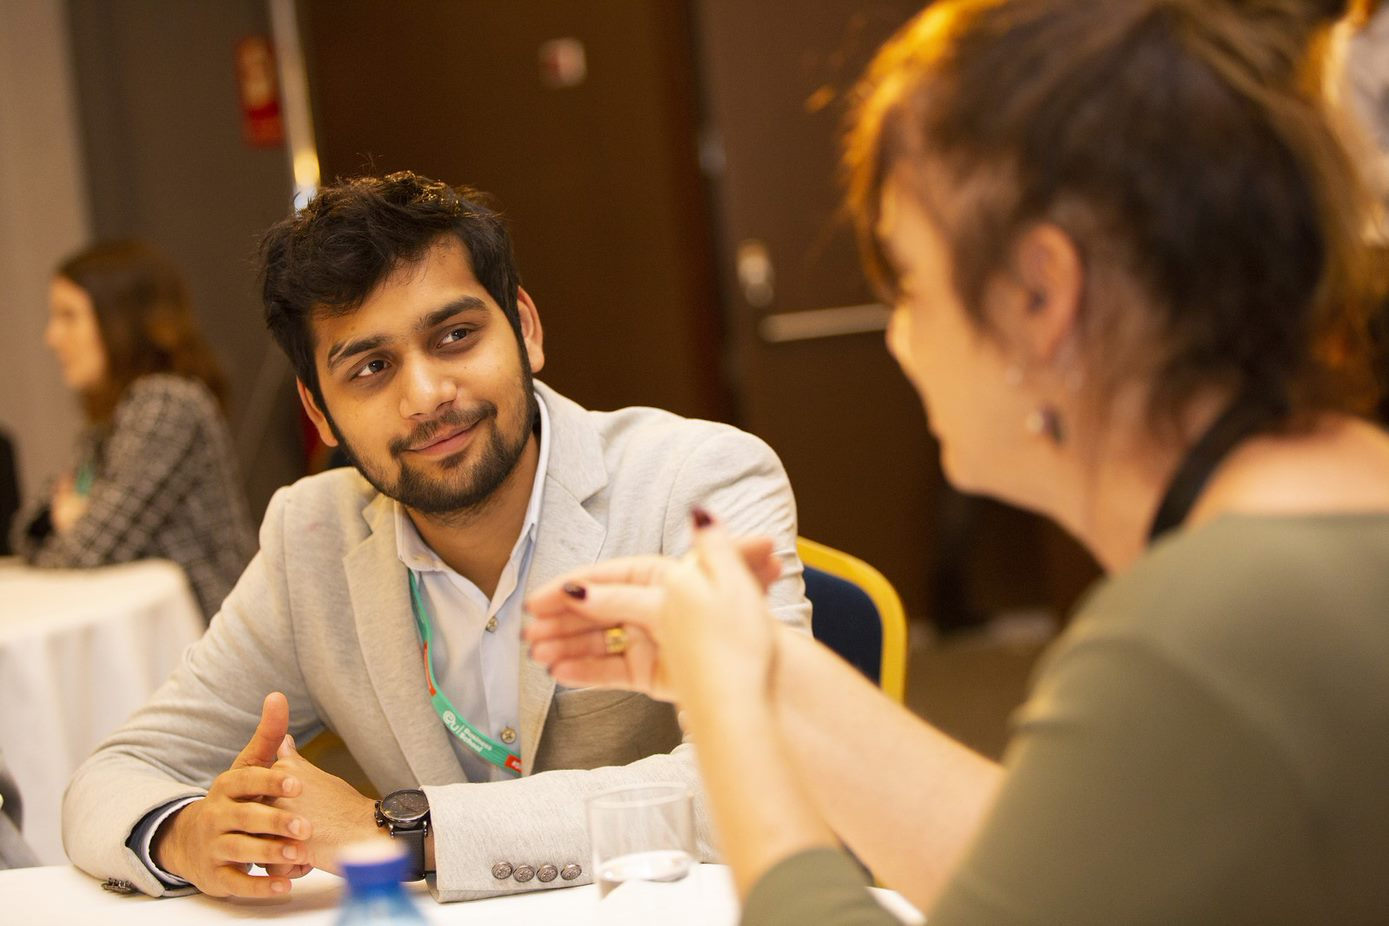 Business students talking at conference